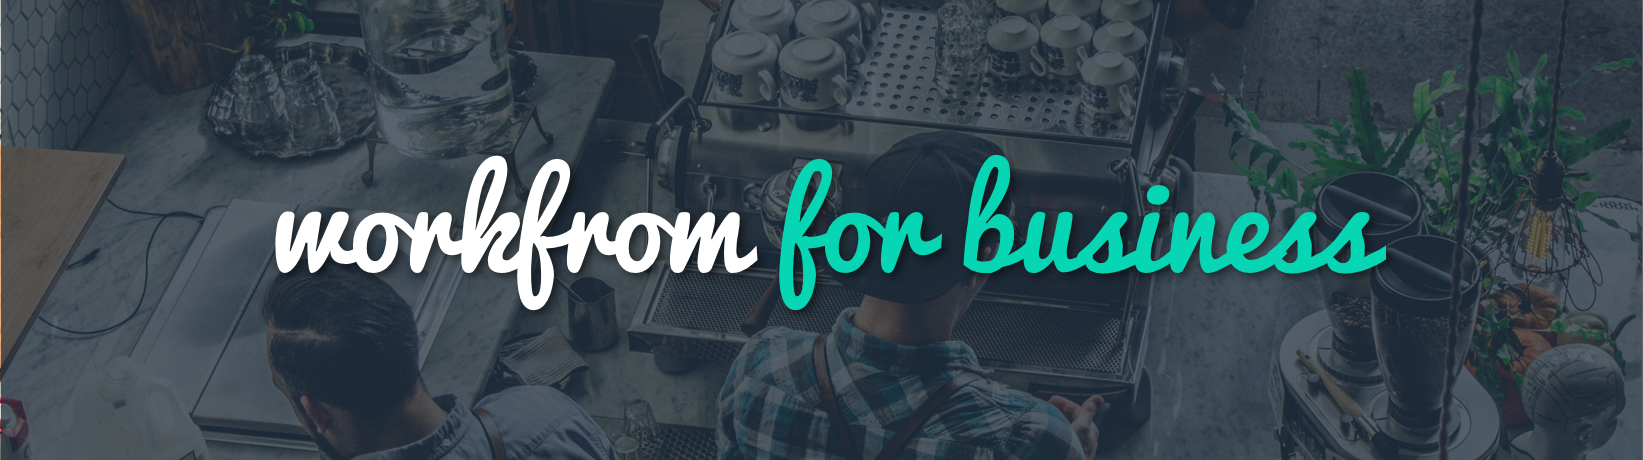 Workfrom for Business Header Image